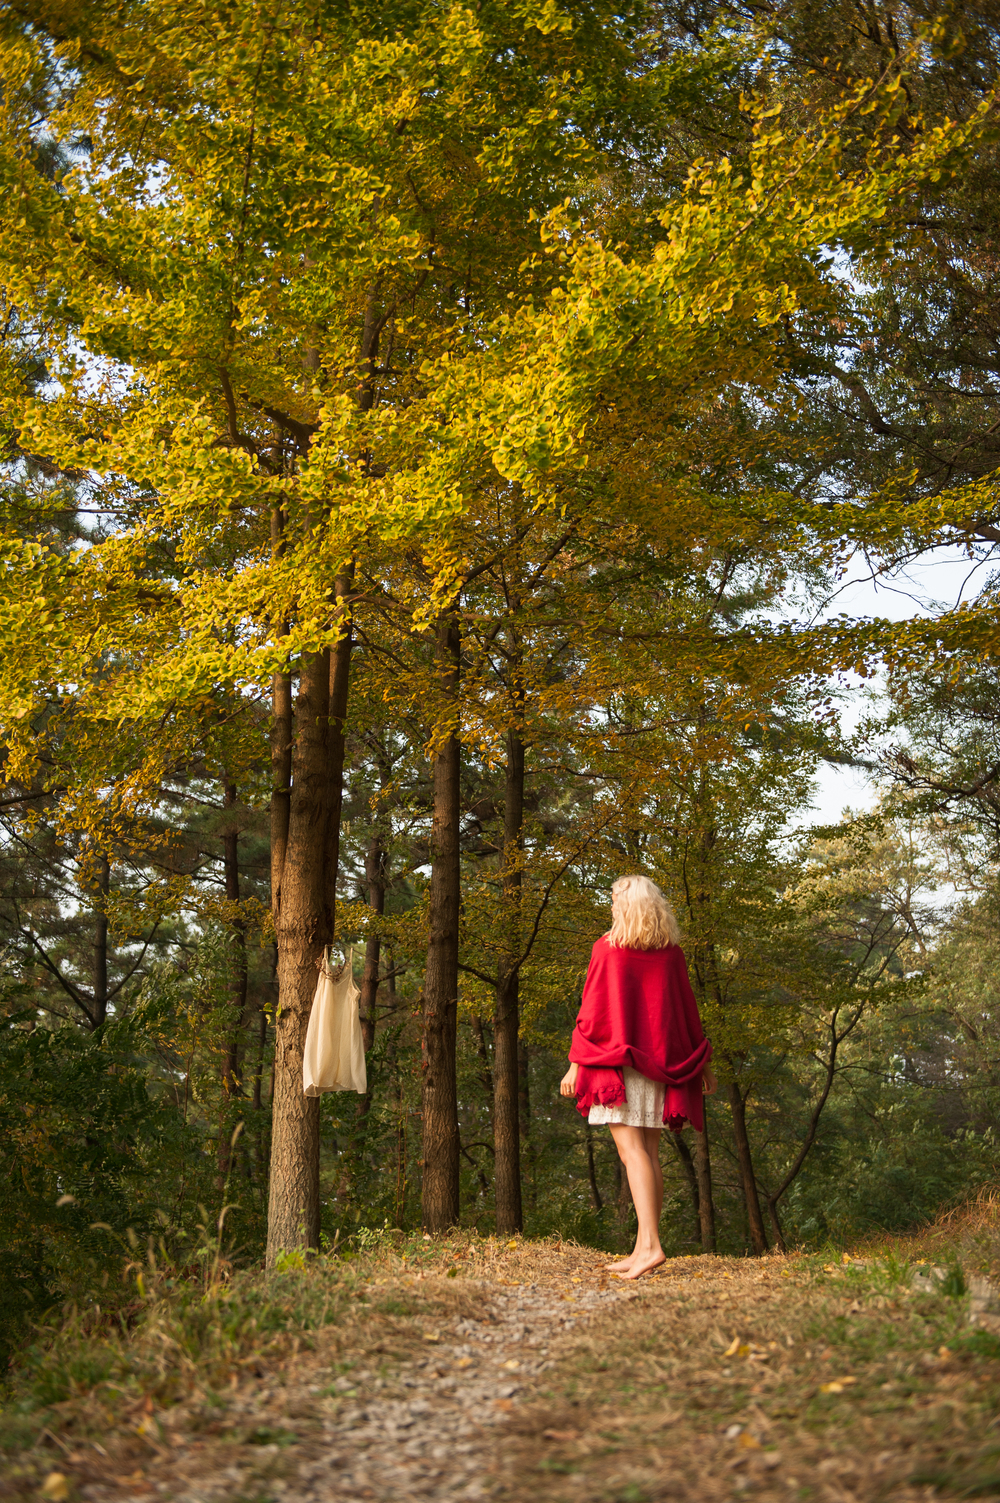 Red Riding Hood Styled Photoshoot South Korea CityGirlSearching Photography (62 of 95).jpg